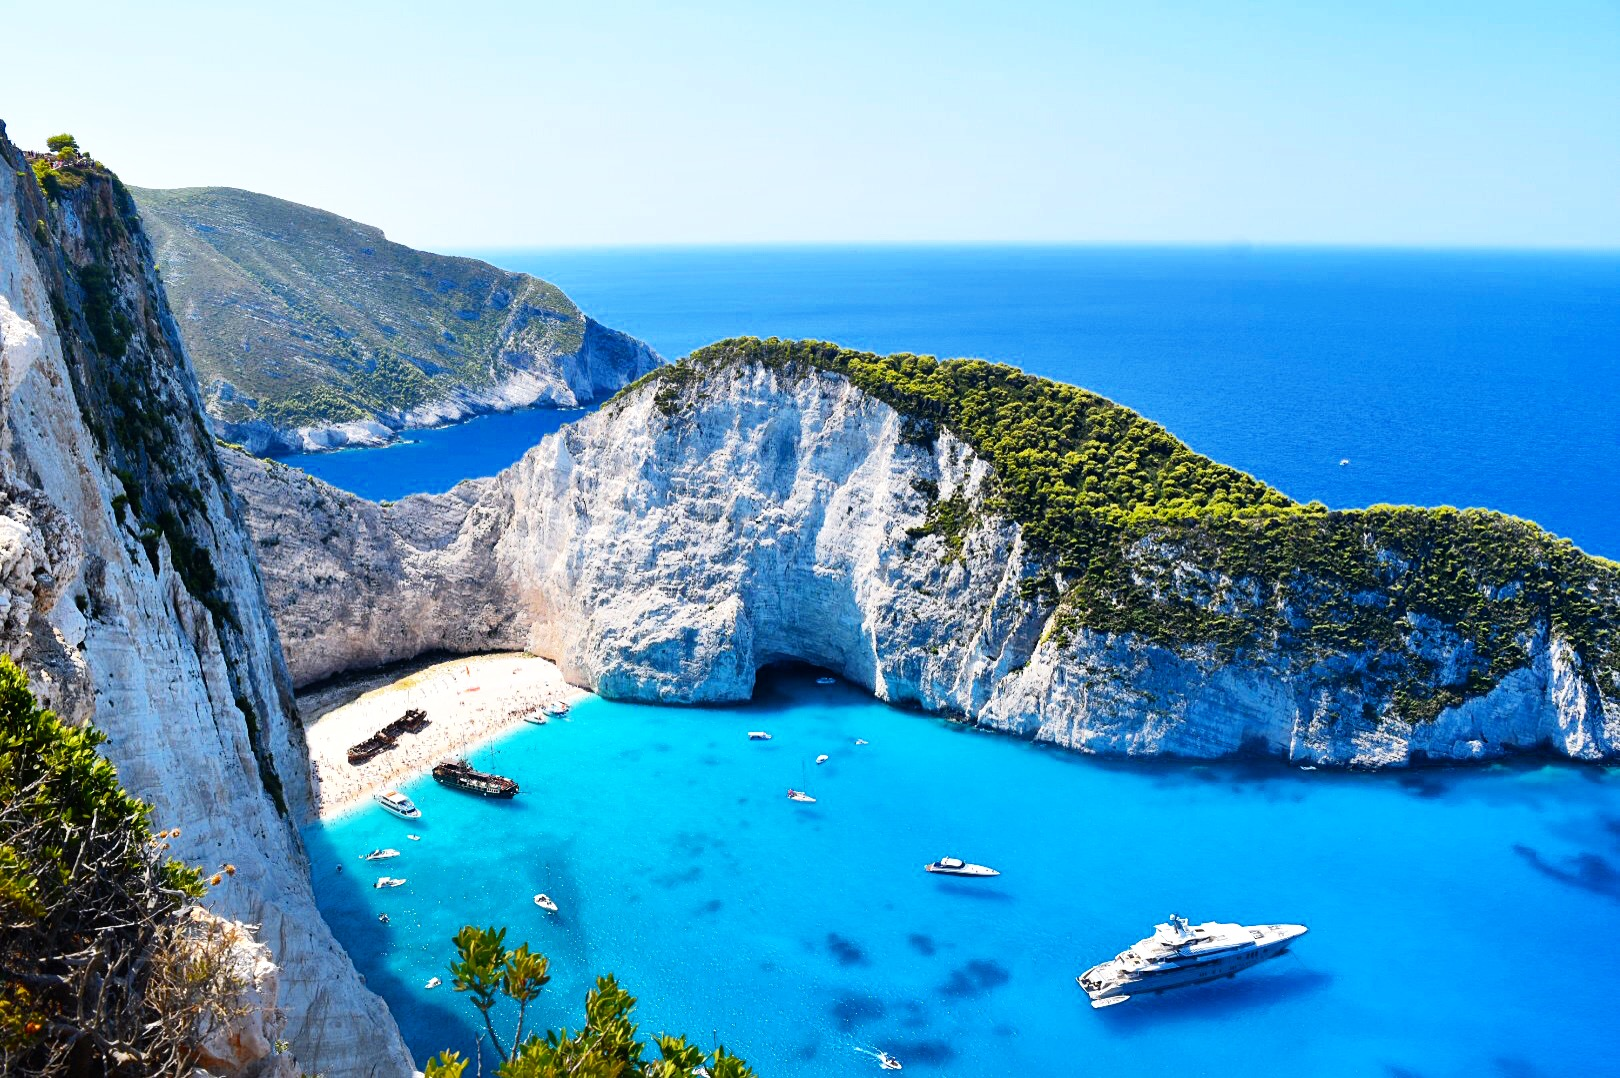 Navagio Beach cliffside